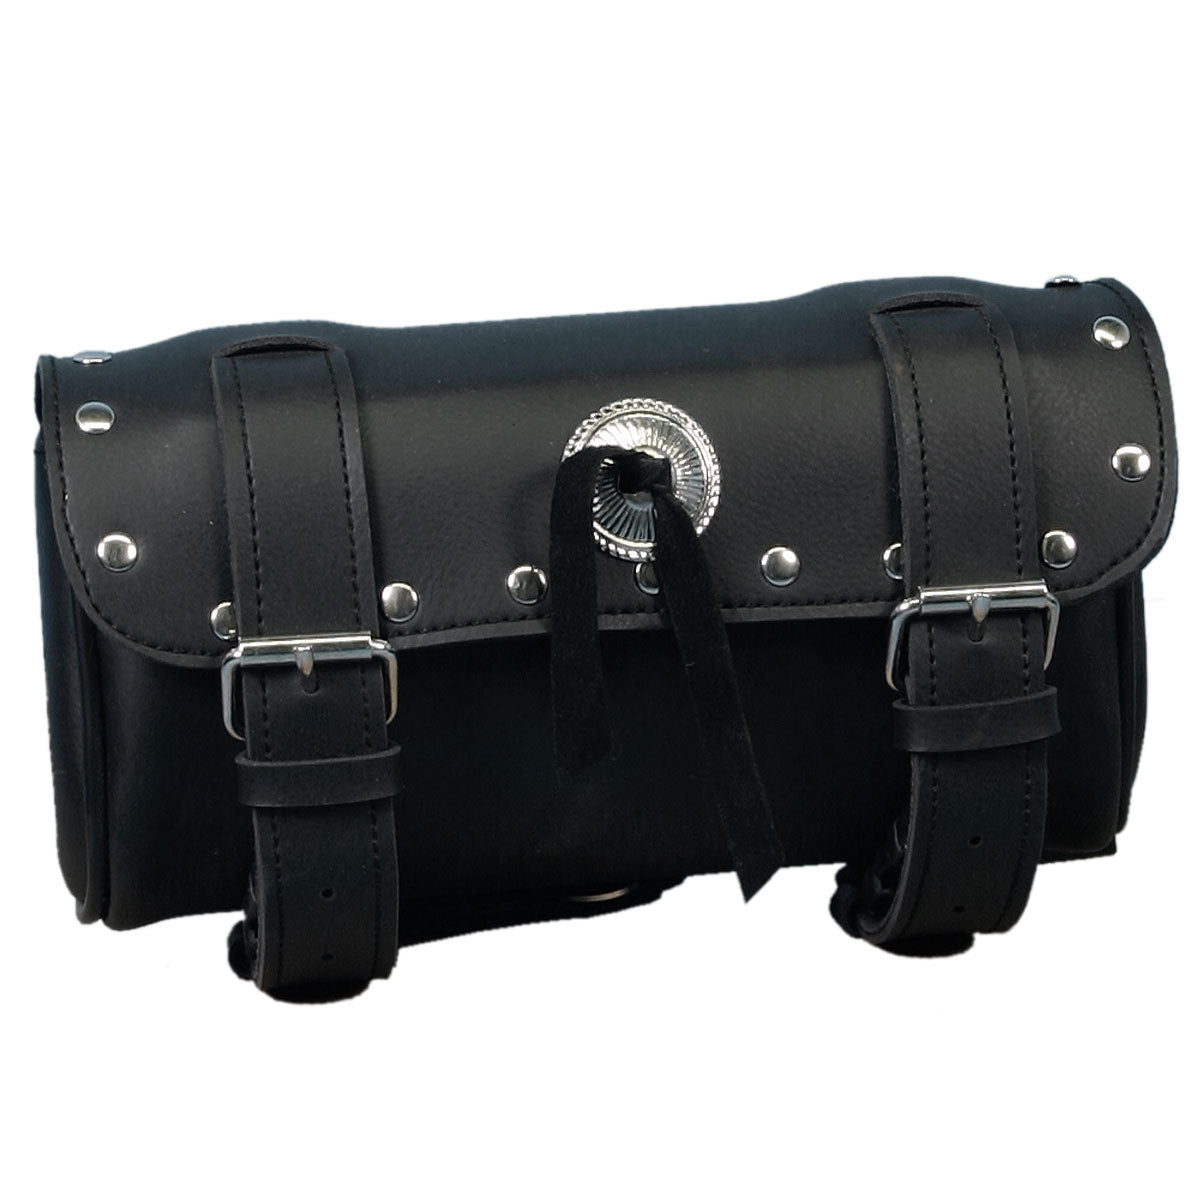 Hot Leathers PVC Motorcycle Tool Bag